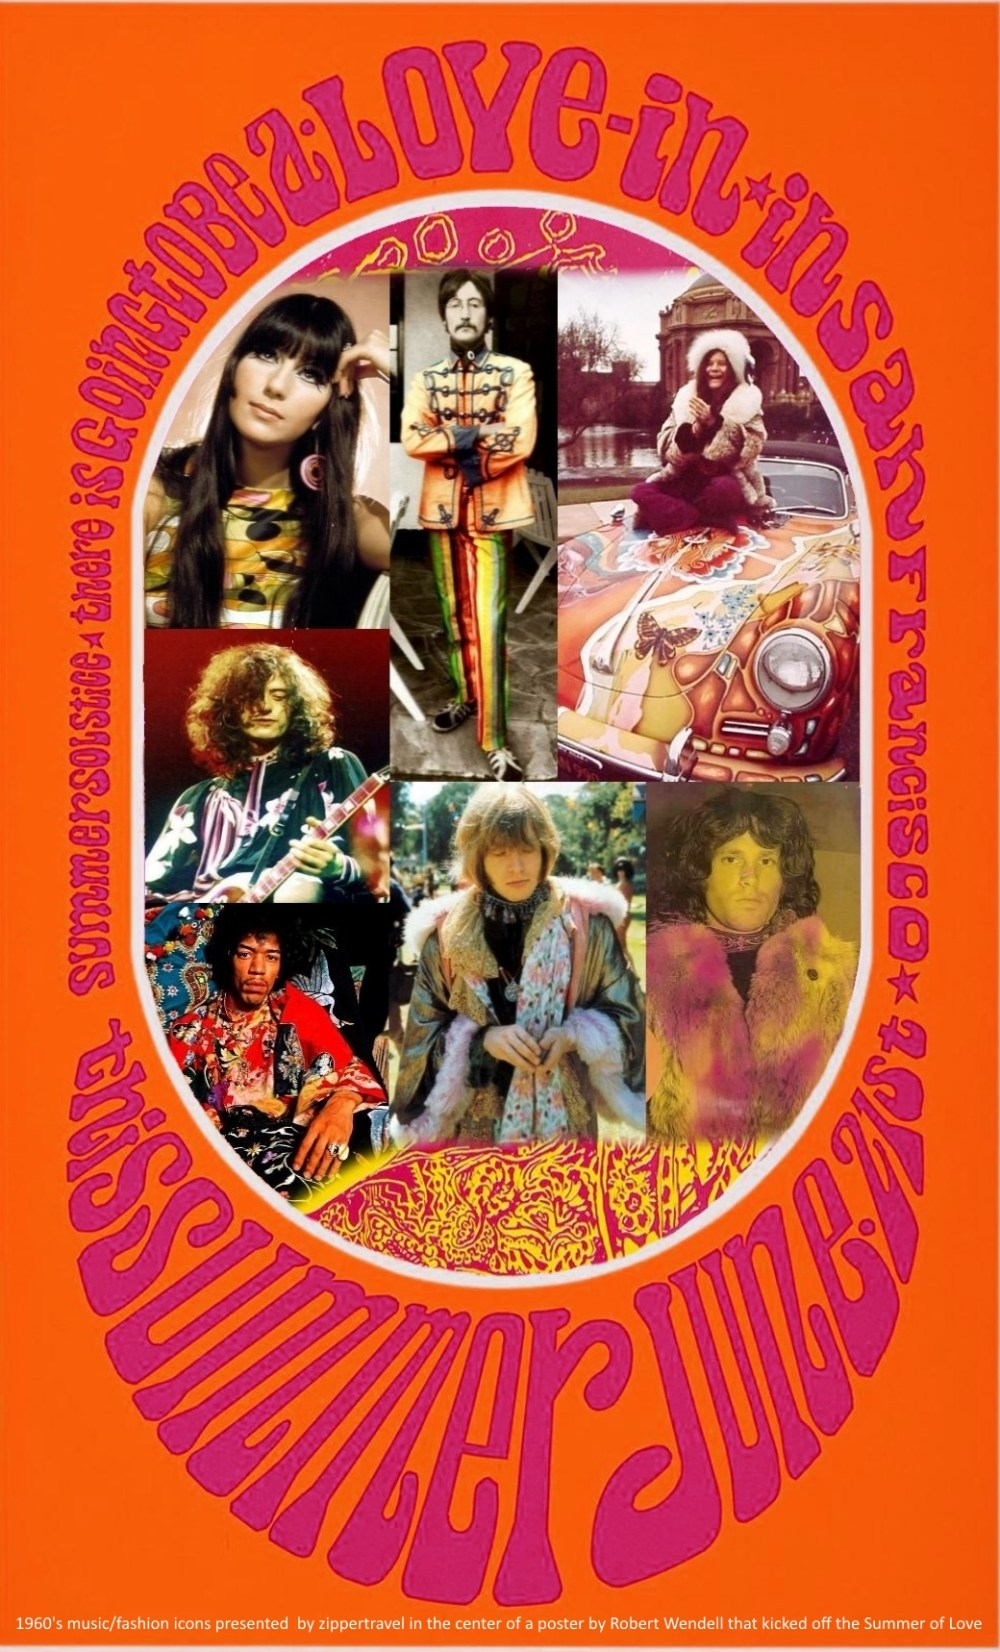 summer of love revisited musicians fashion icons